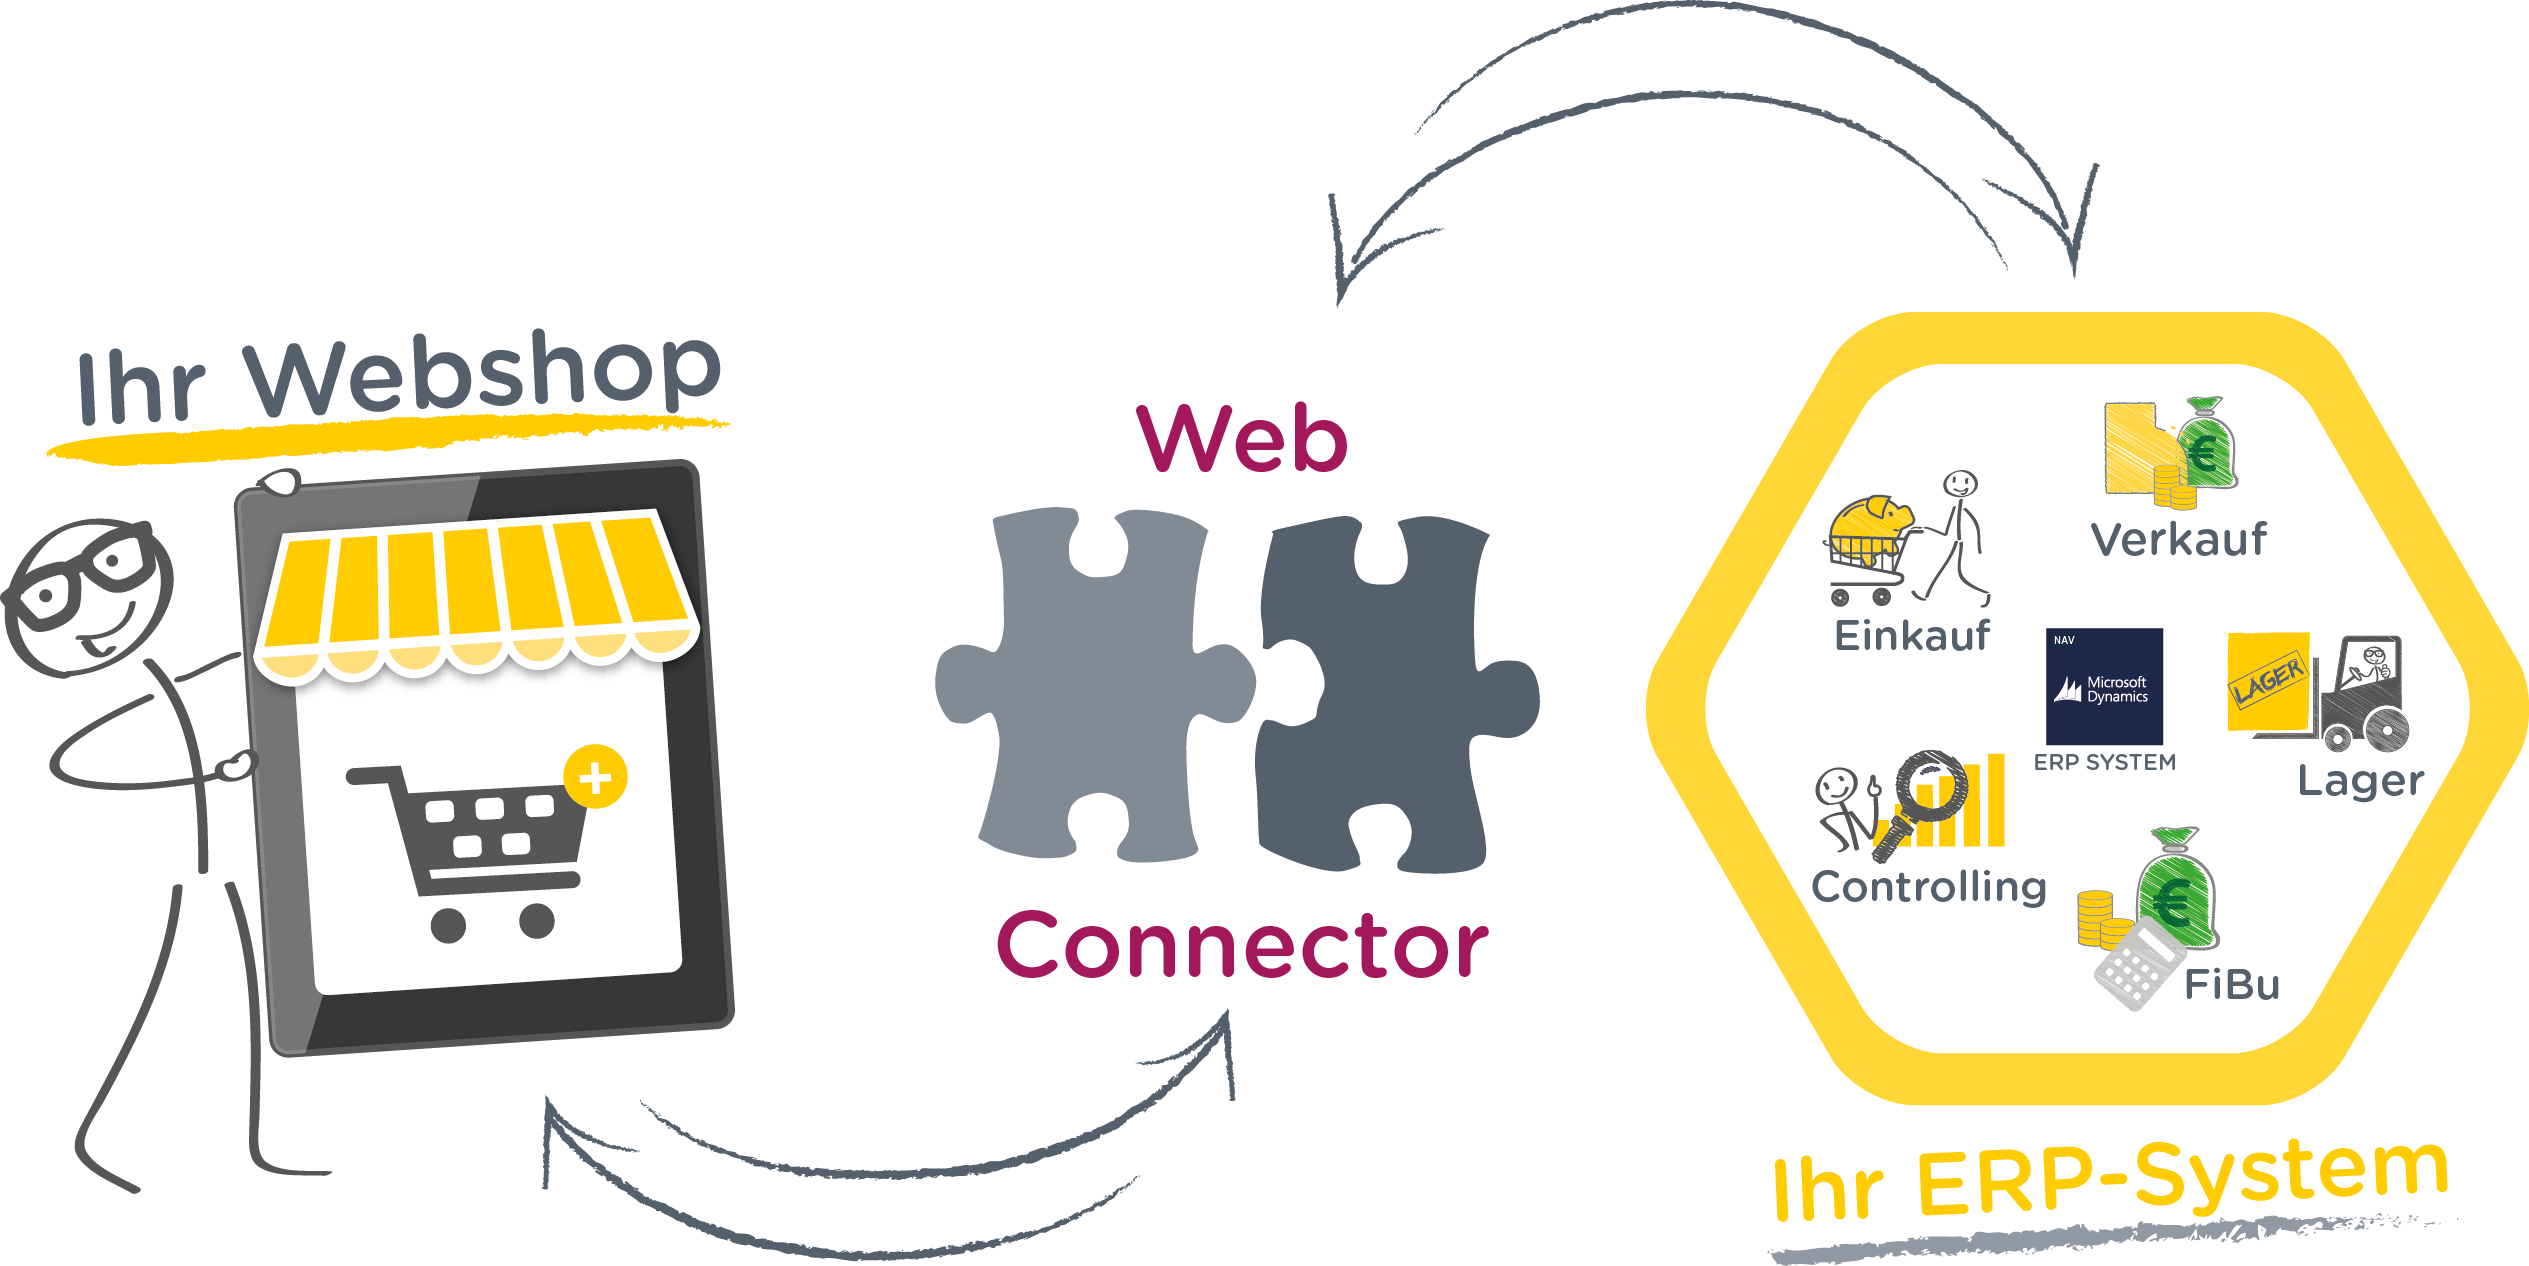 WebConnector